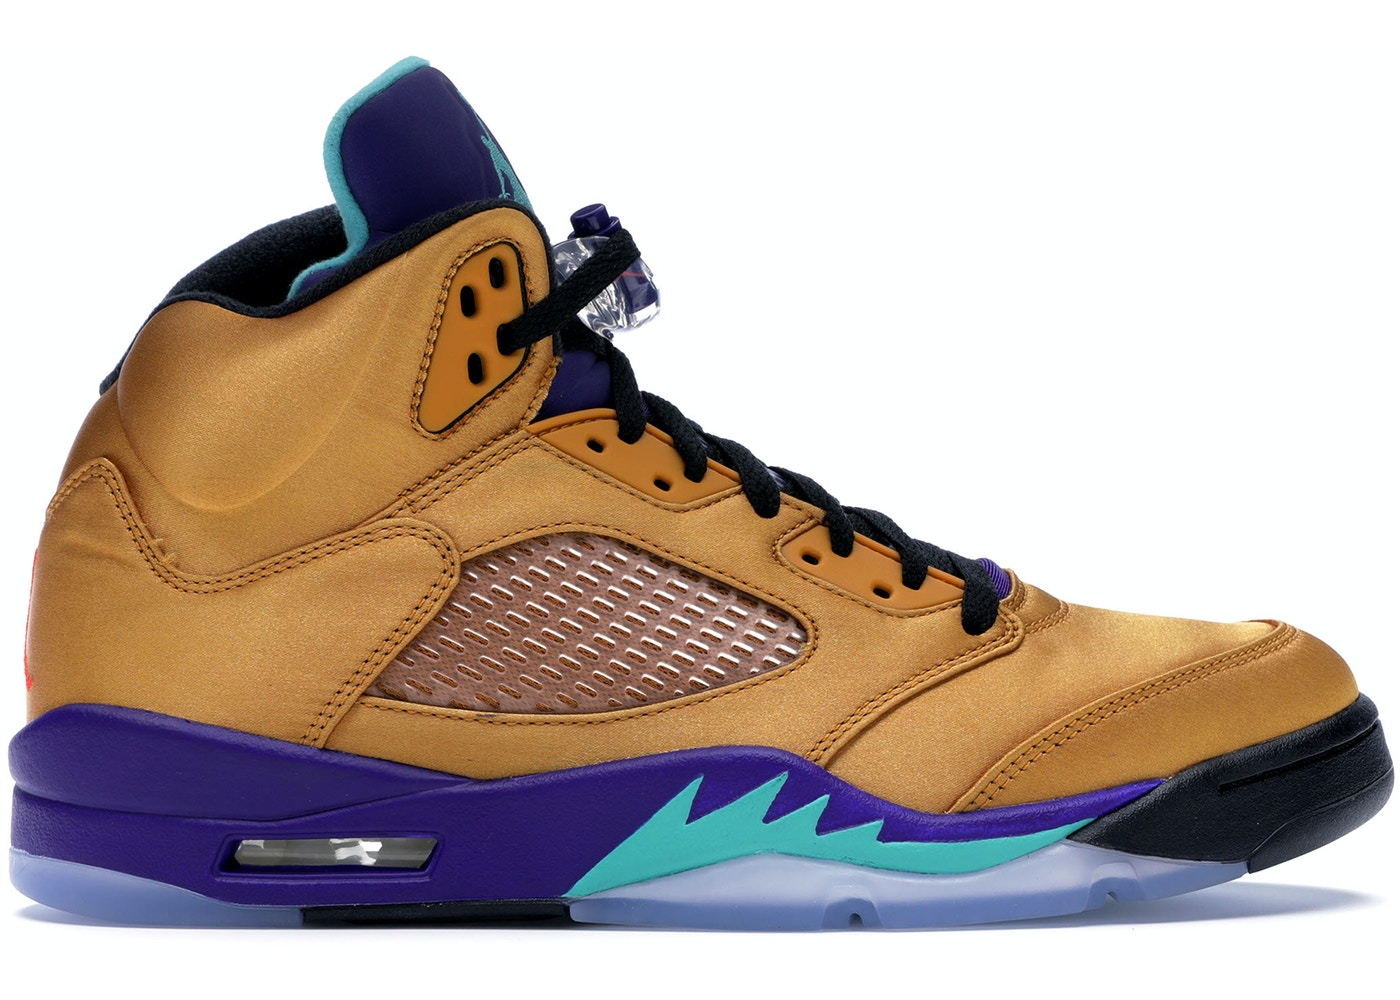 hot sale online a0a00 69a9f Air Jordan Shoes - Average Sale Price